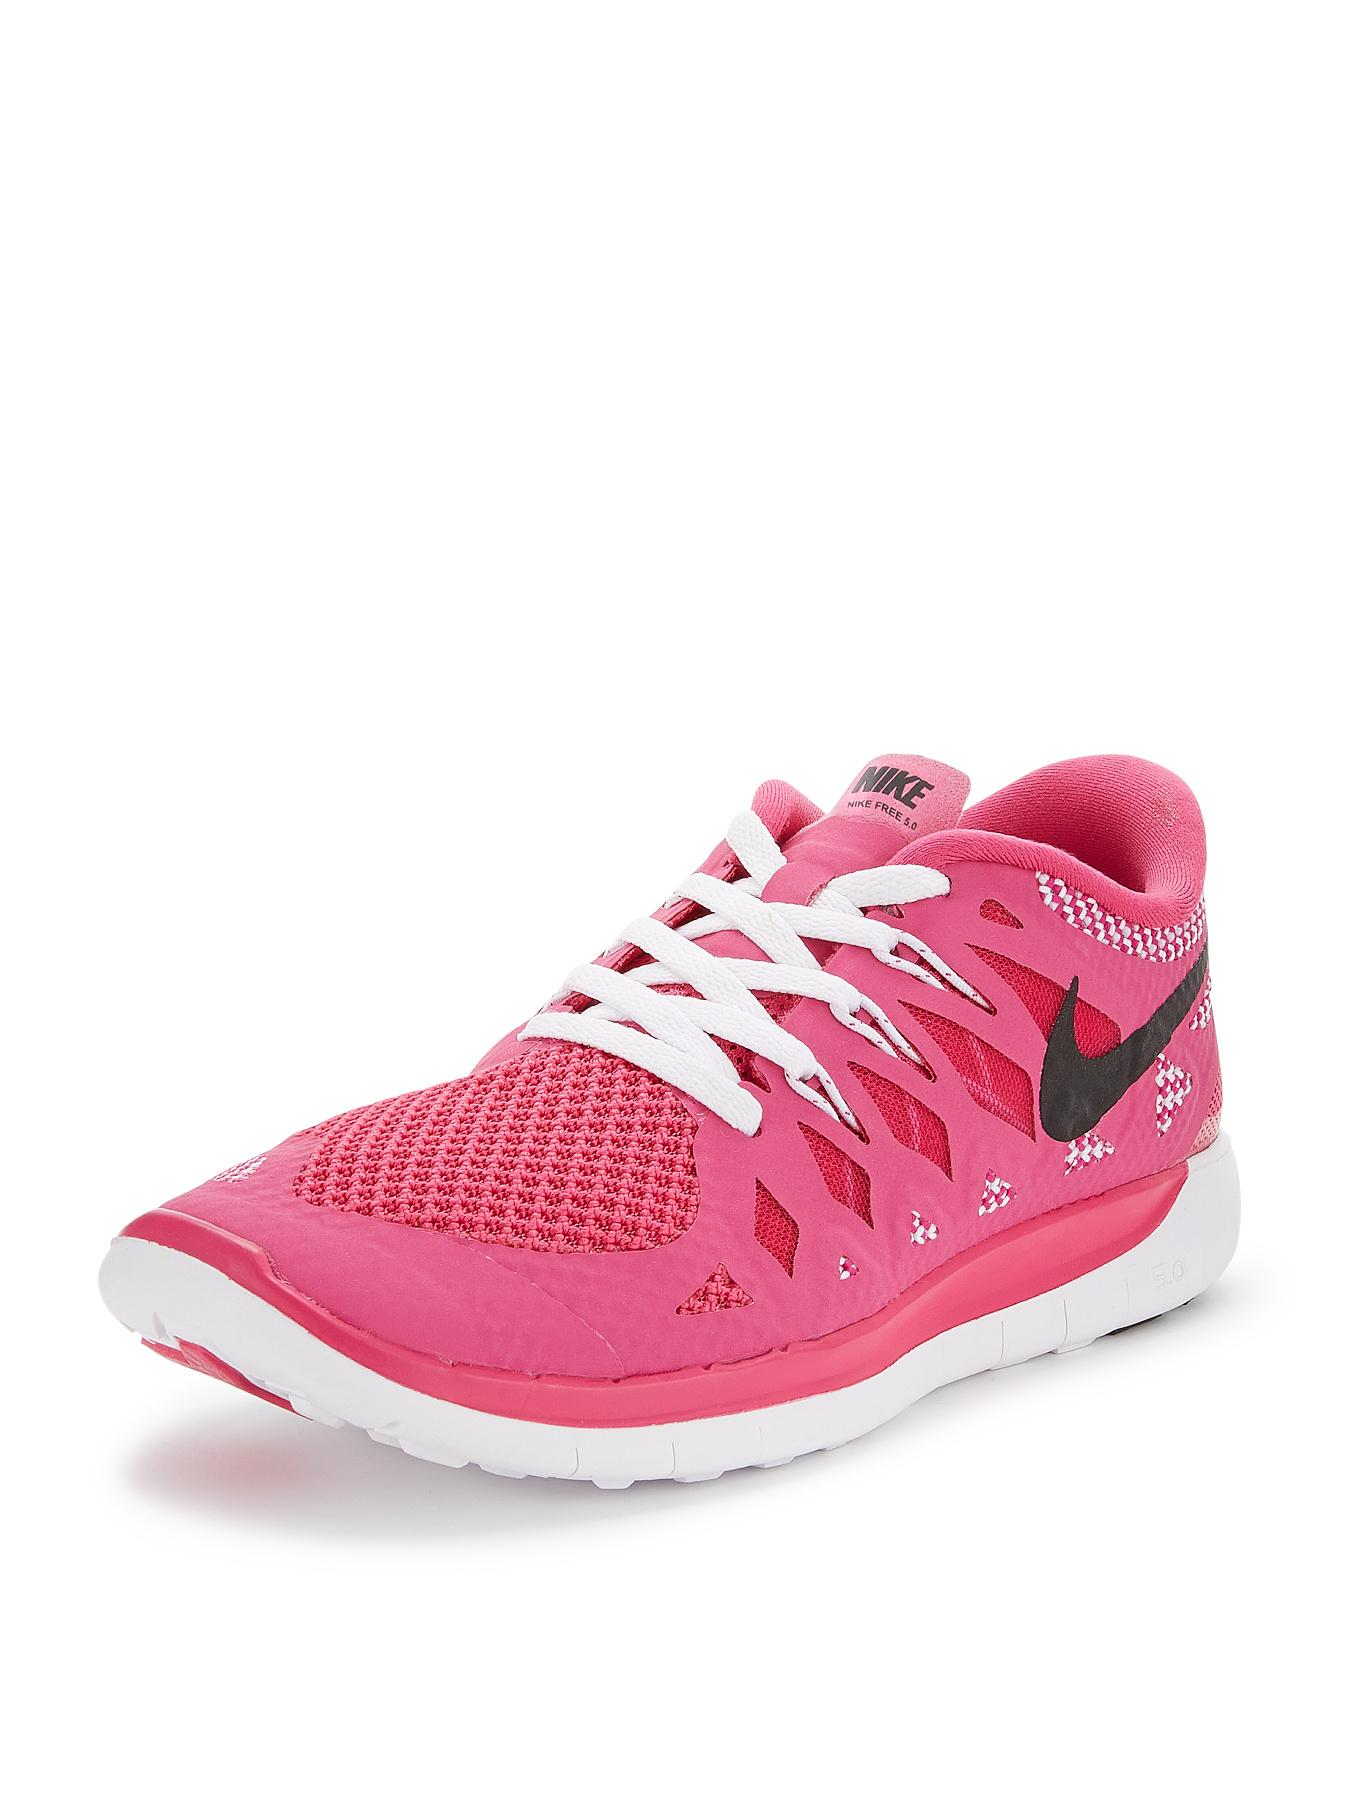 Nike Free 5.0 Junior Trainers - Pink, Pink